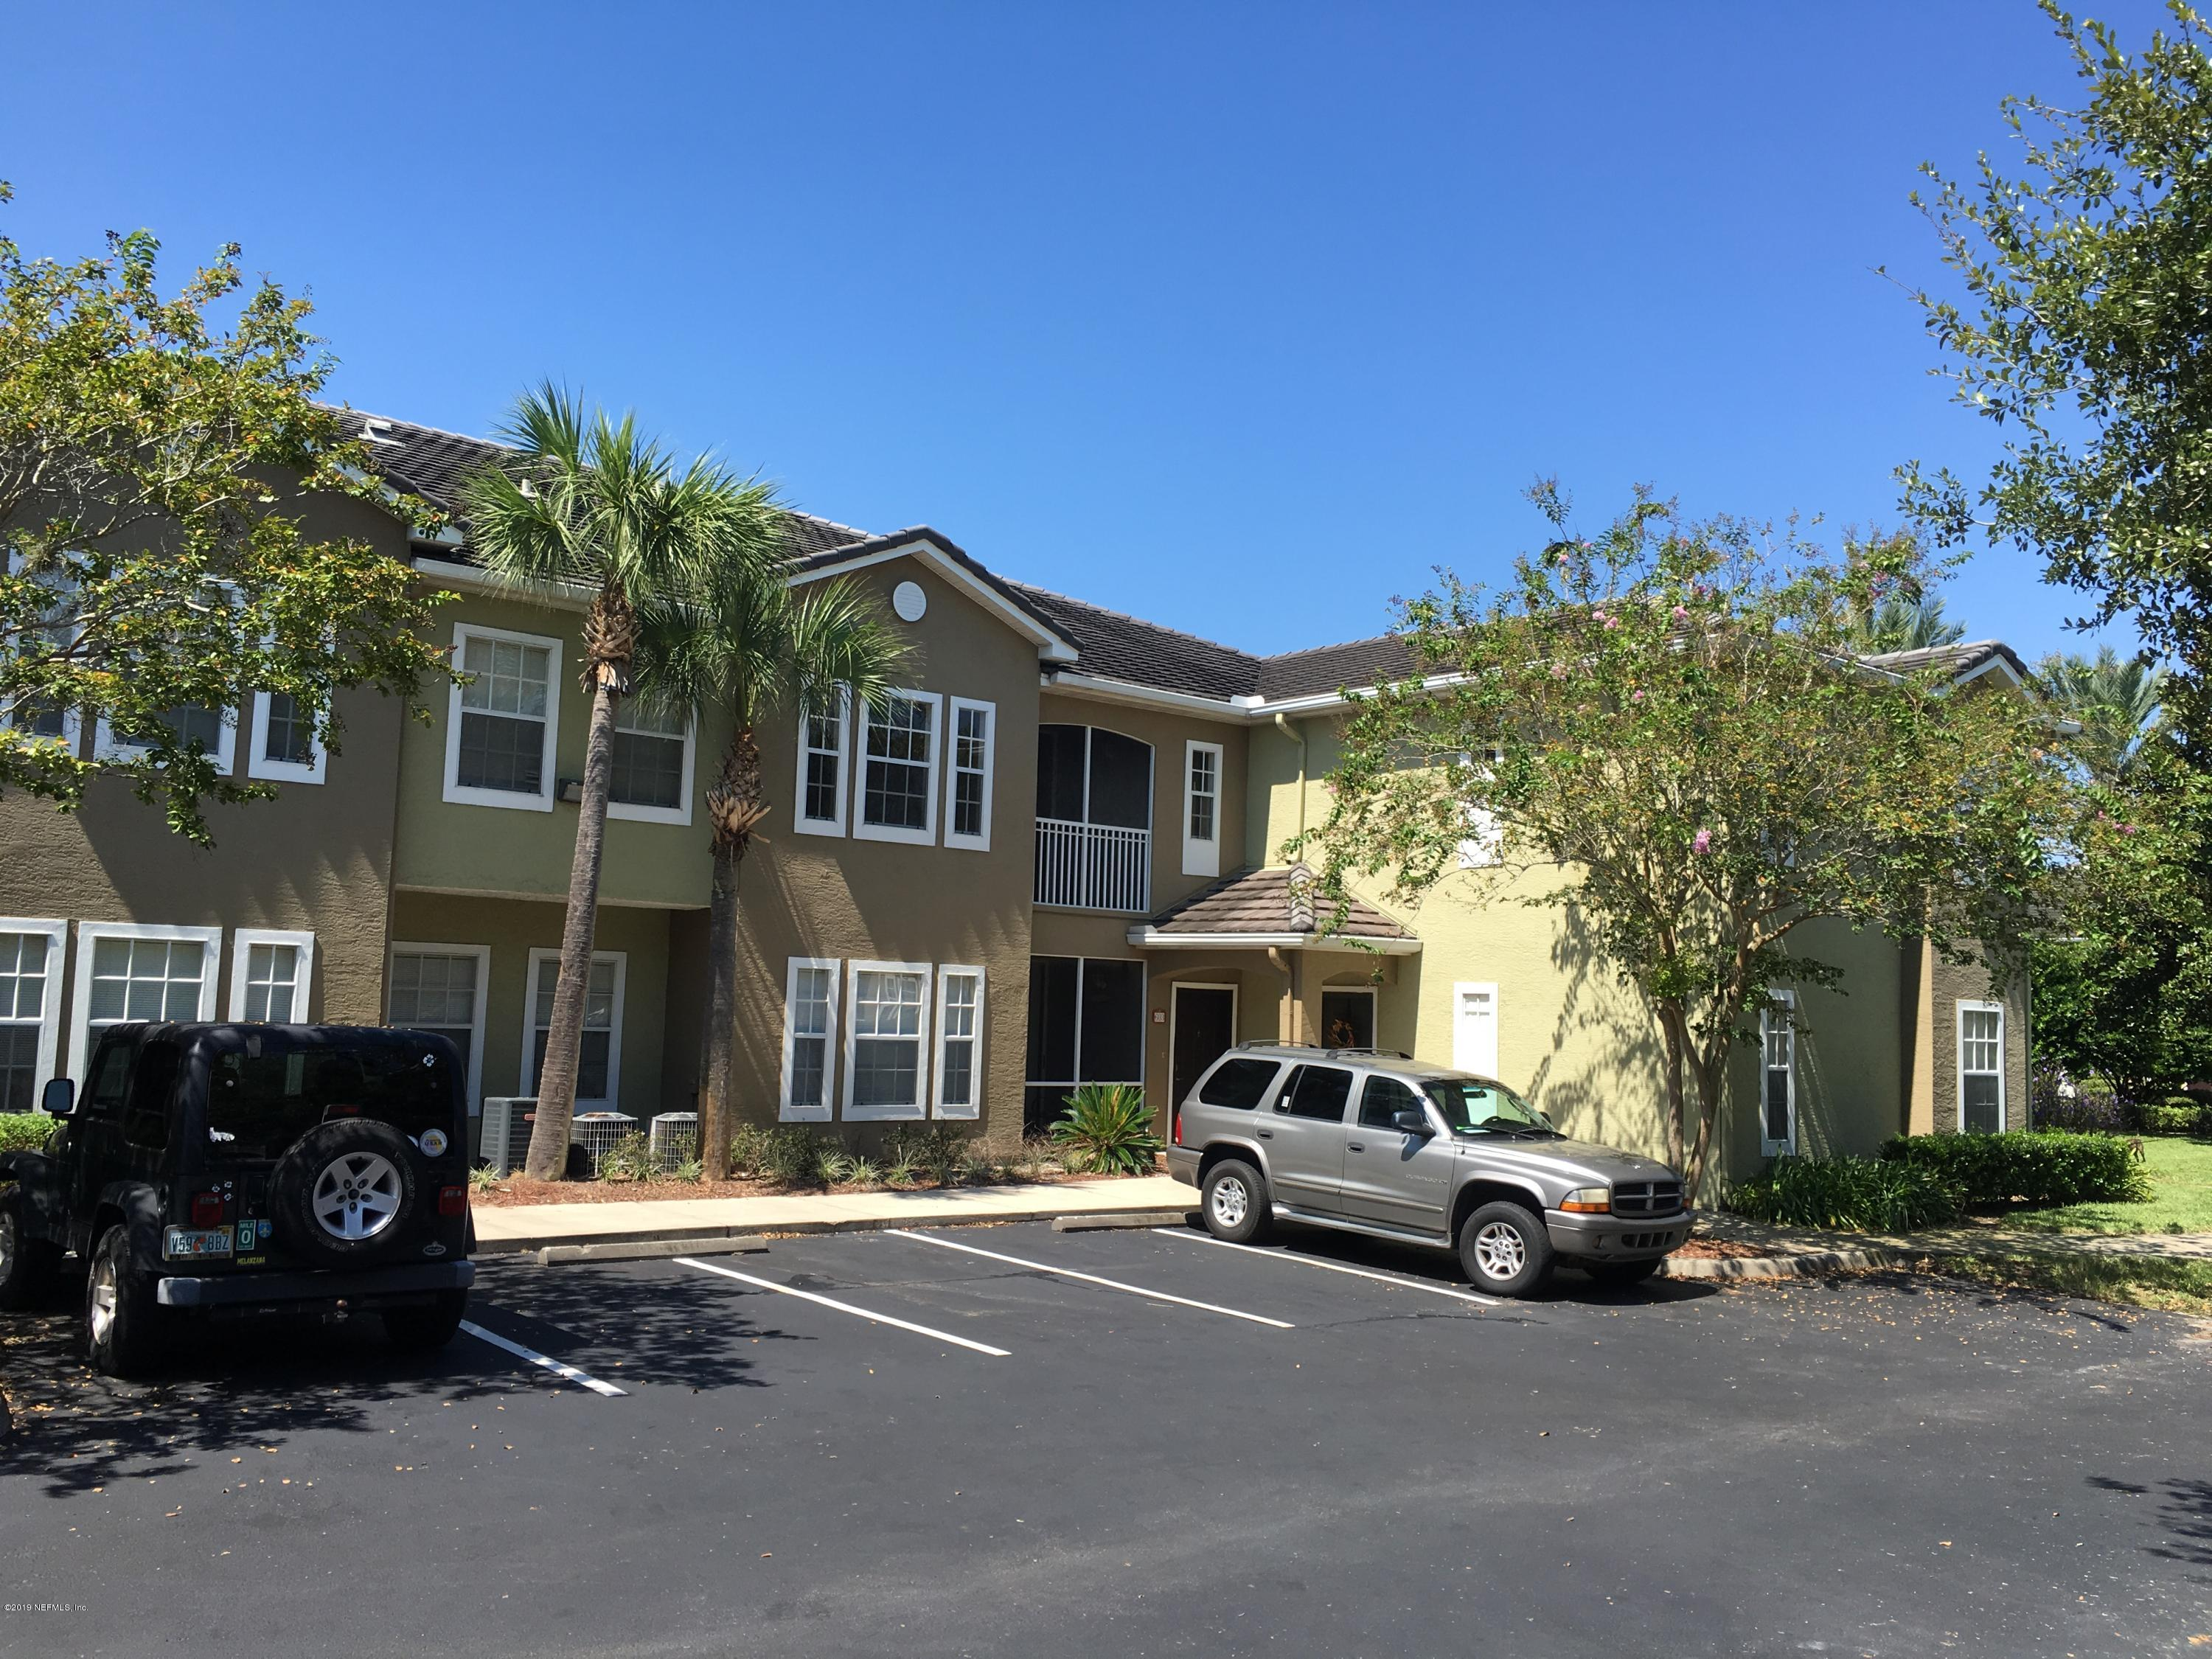 10075 GATE, JACKSONVILLE, FLORIDA 32246, 2 Bedrooms Bedrooms, ,2 BathroomsBathrooms,Condo,For sale,GATE,1021534